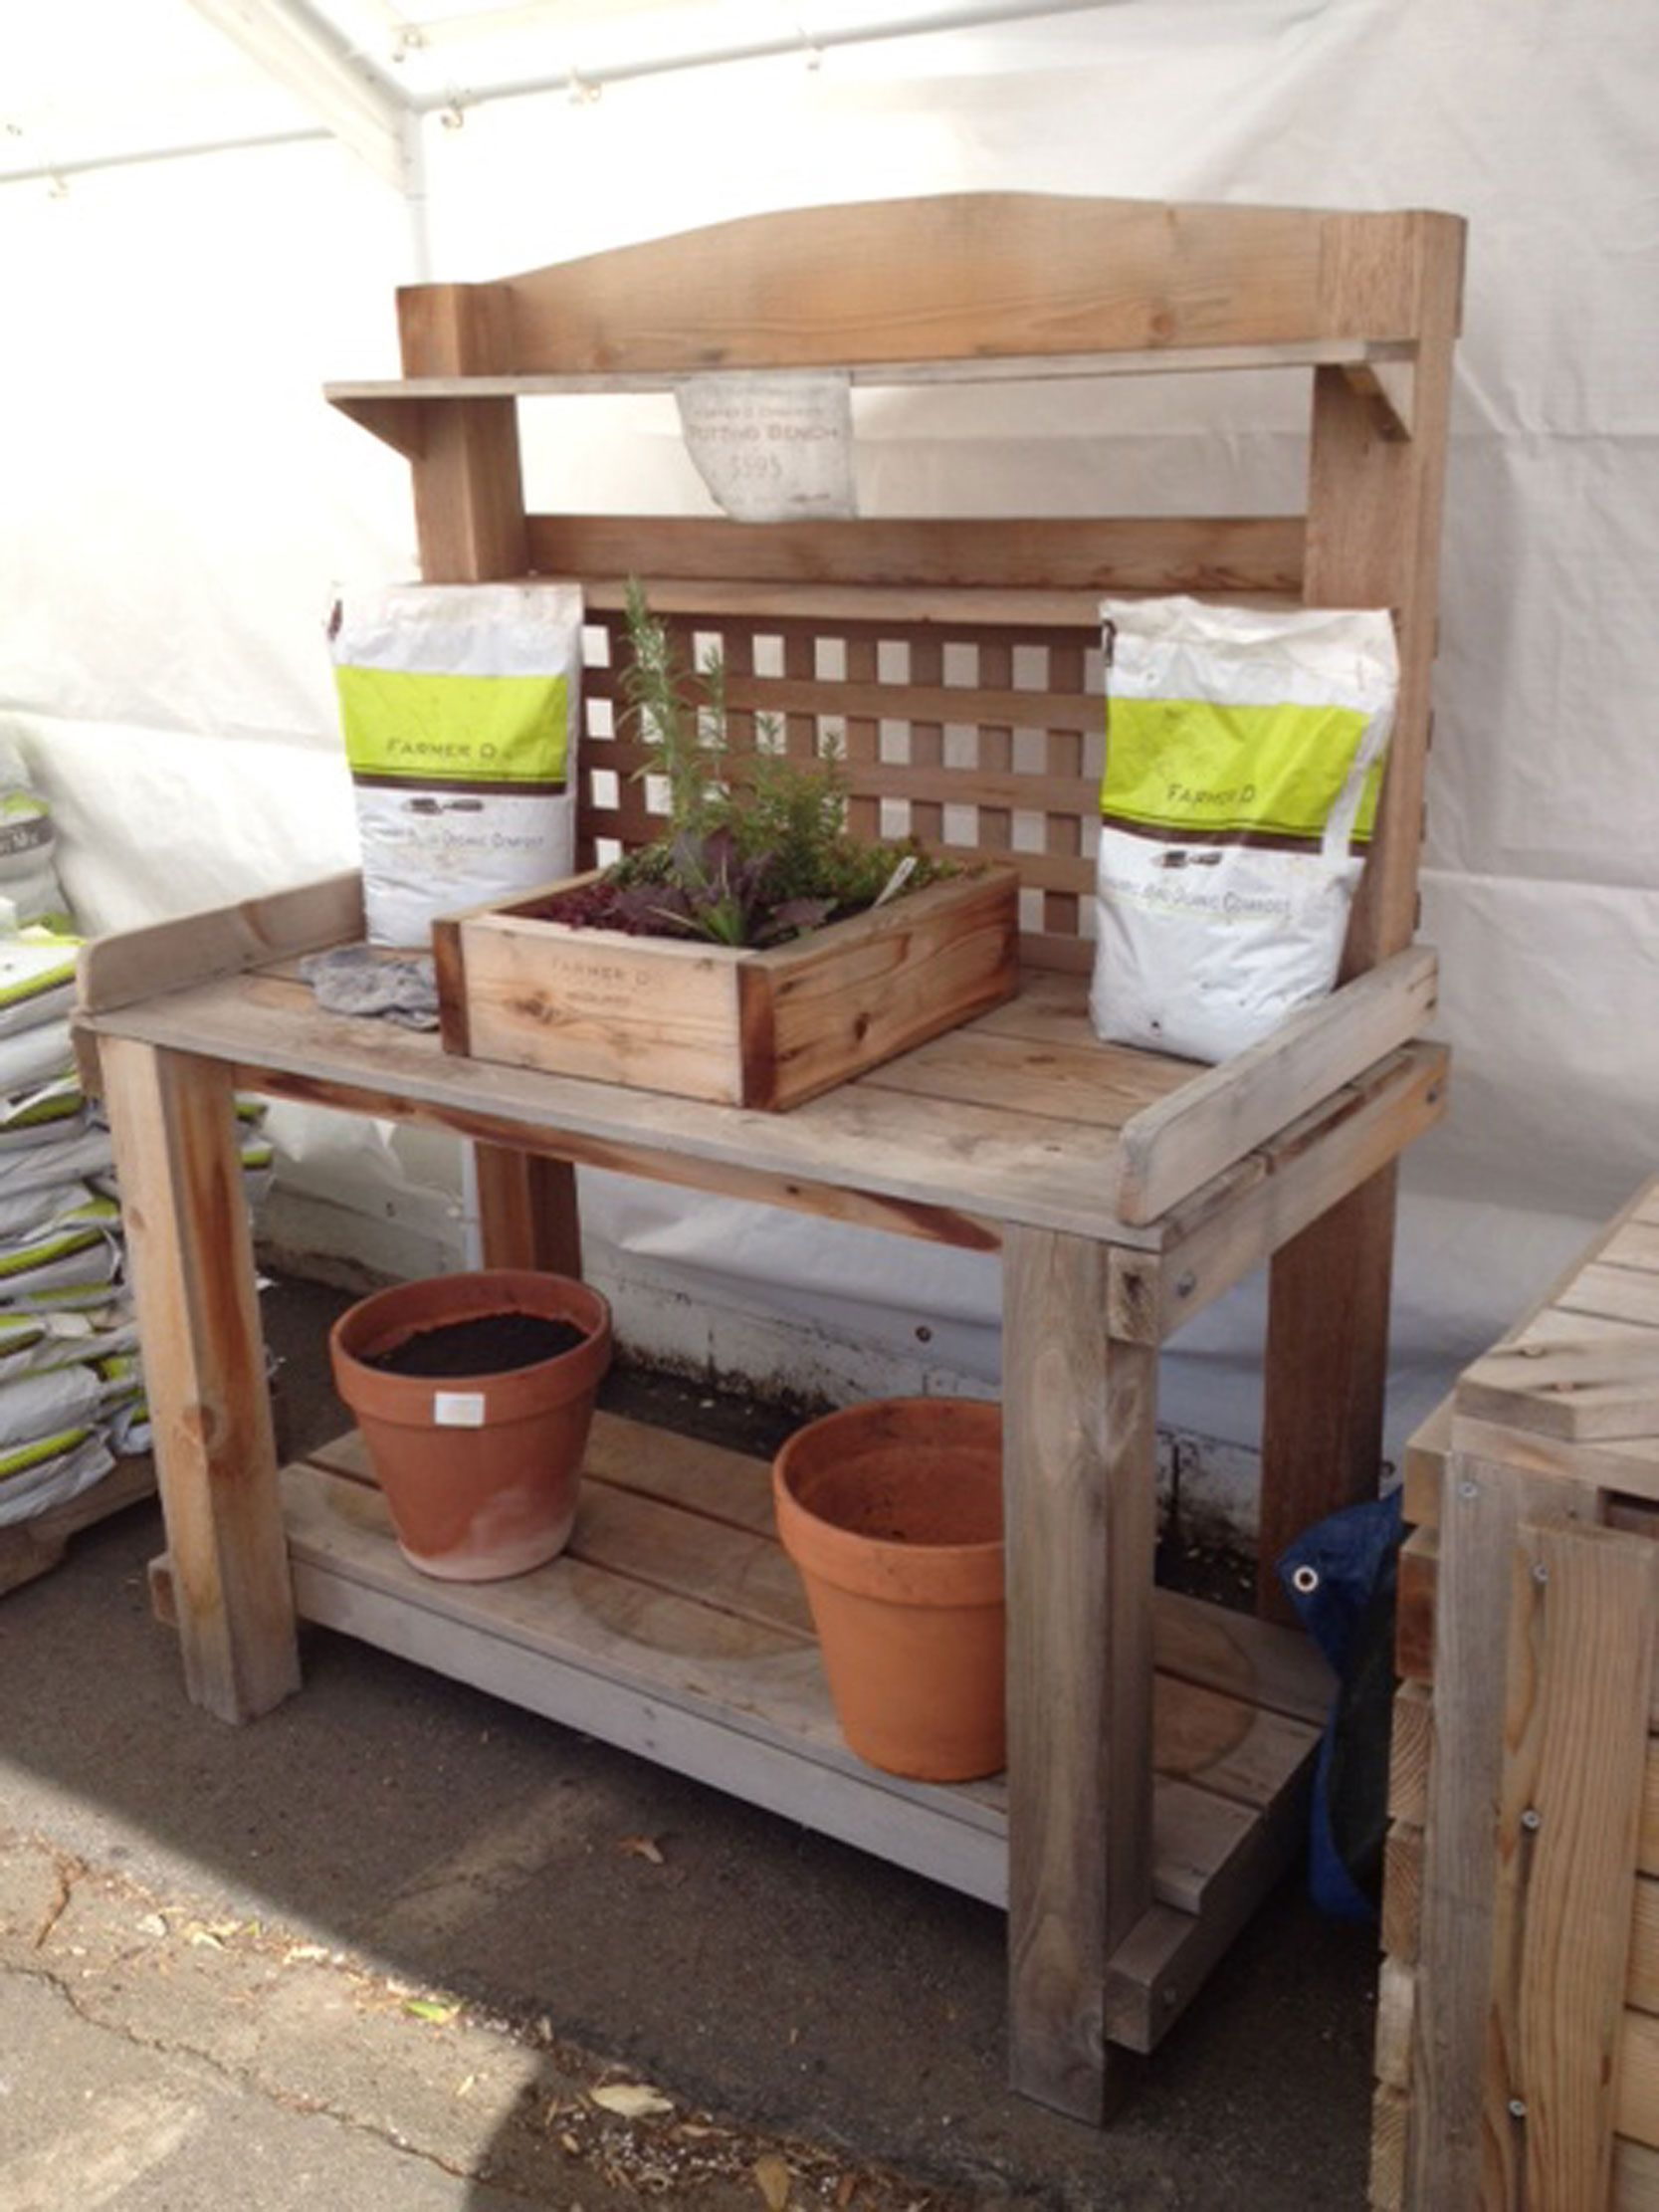 Inspiration for a potting bench 2012 potting bench ideas pintere Potting bench ideas